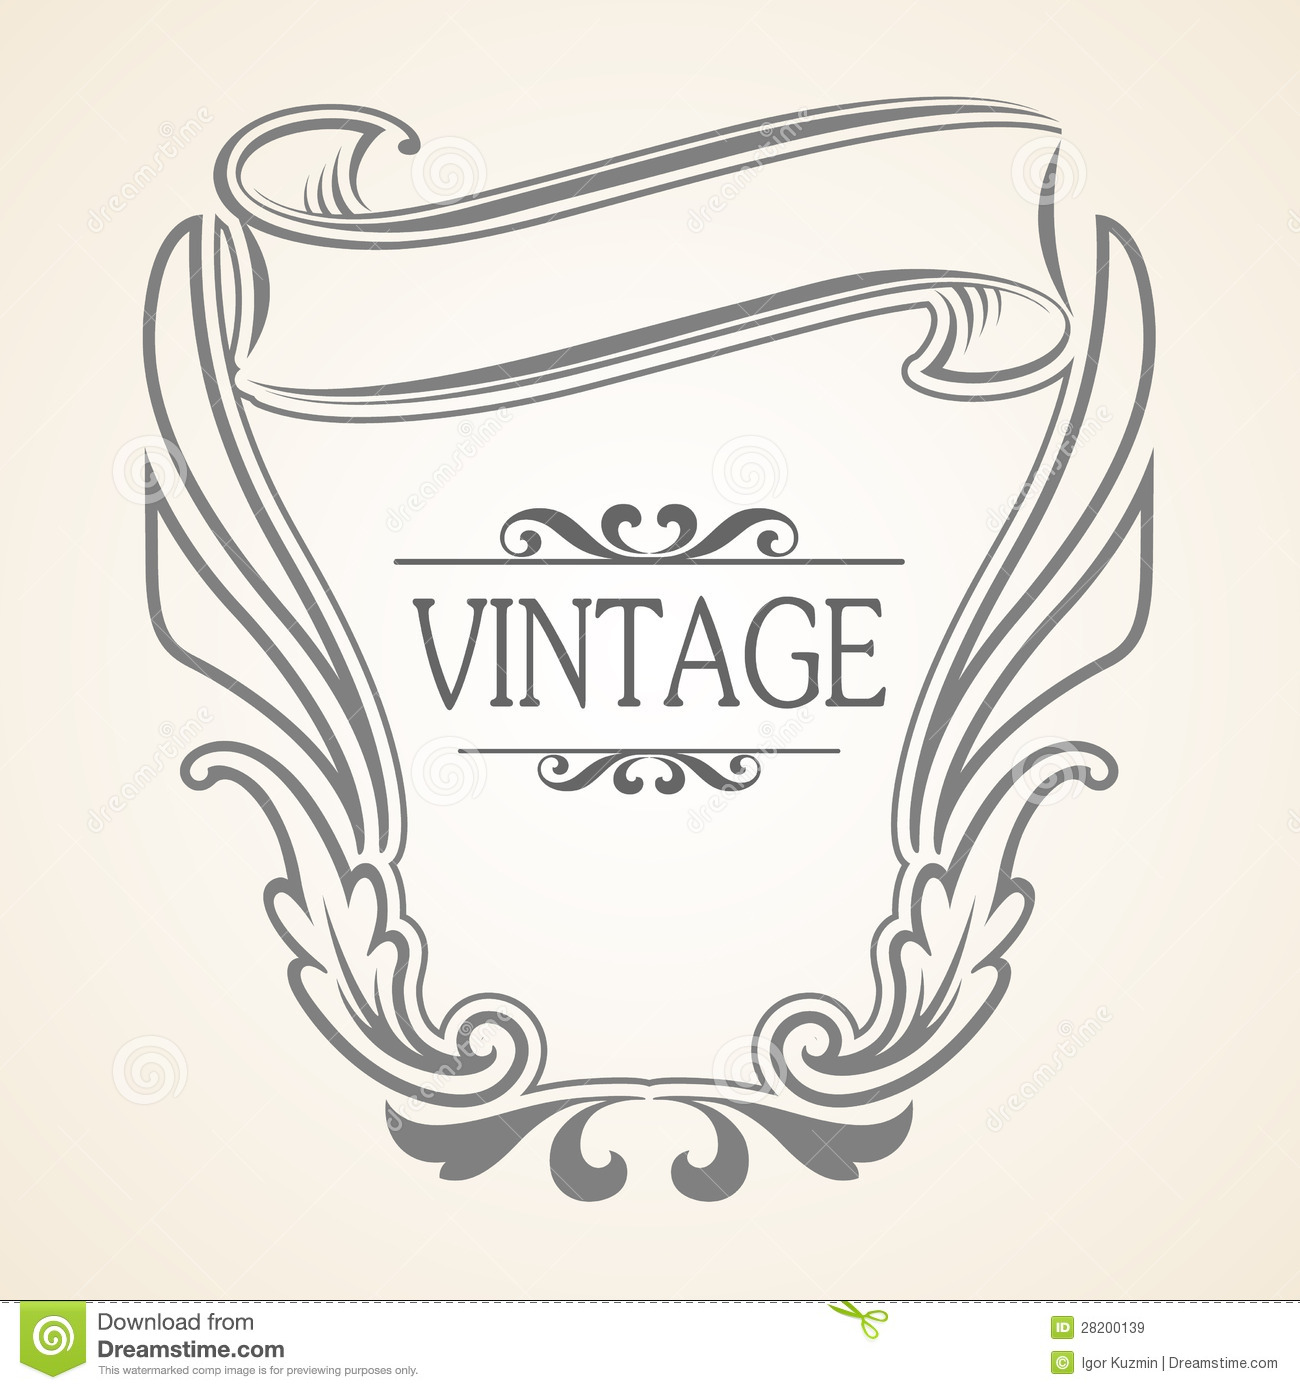 Vector Vintage Frame Royalty Free Stock Images - Image: 28200139